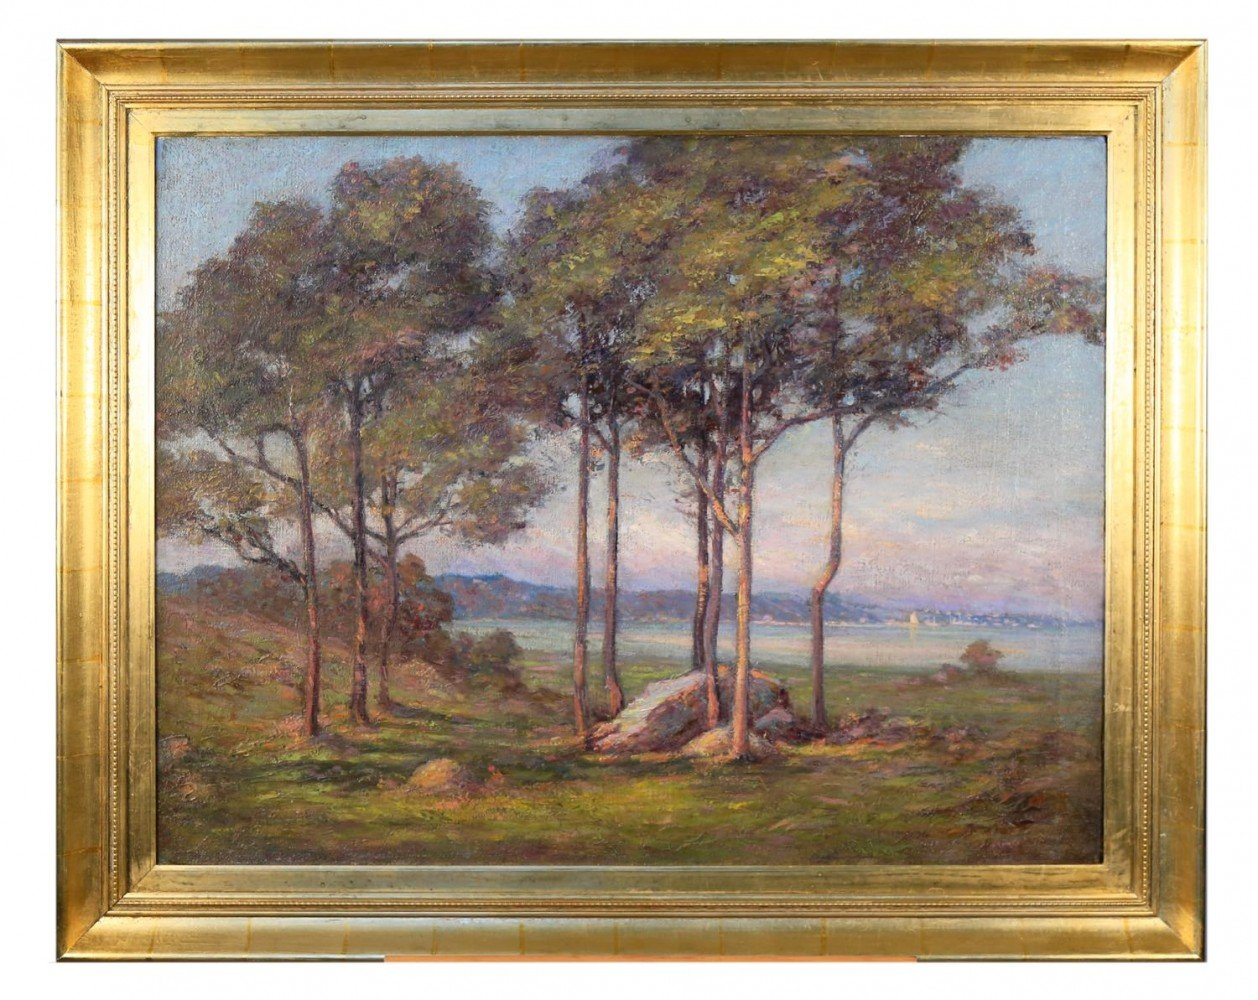 20thc. American School Landscape with Trees, a Lake, and Sailboats in the Distance